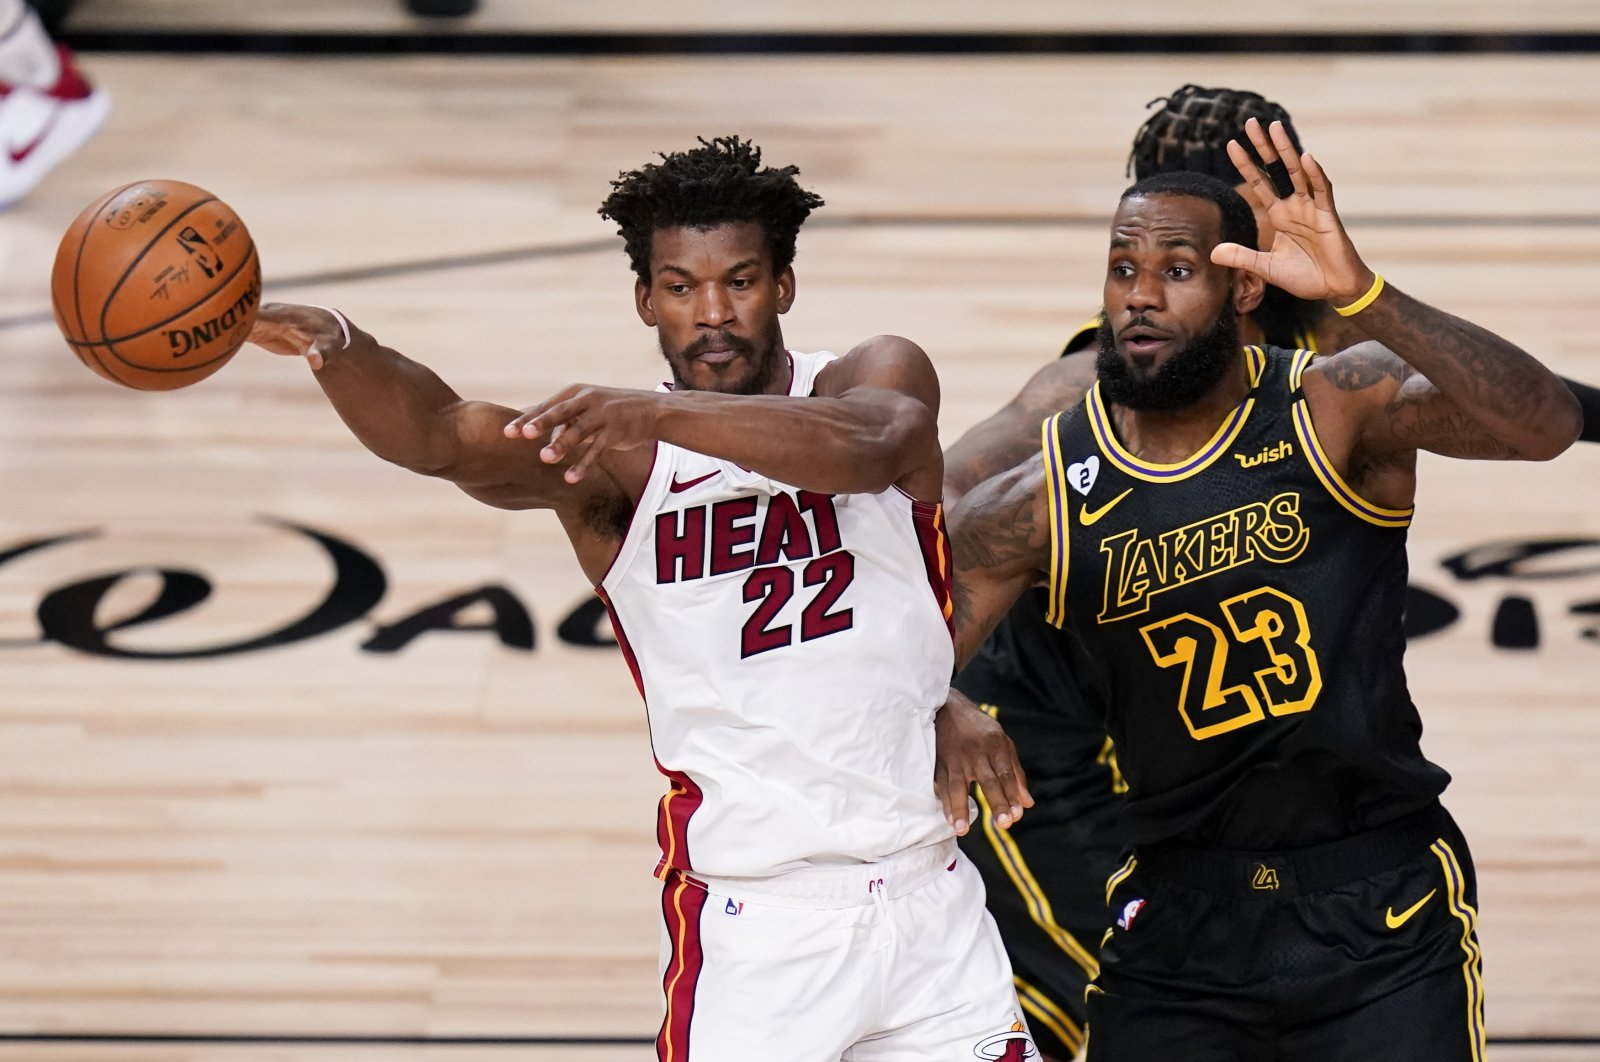 Miami Heat forward Jimmy Butler, left, passes around Los Angeles Lakers forward LeBron James during the first half in Game 5 of basketball's NBA Finals Friday, Oct. 9, 2020, in Lake Buena Vista, Florida. (AP Photo)